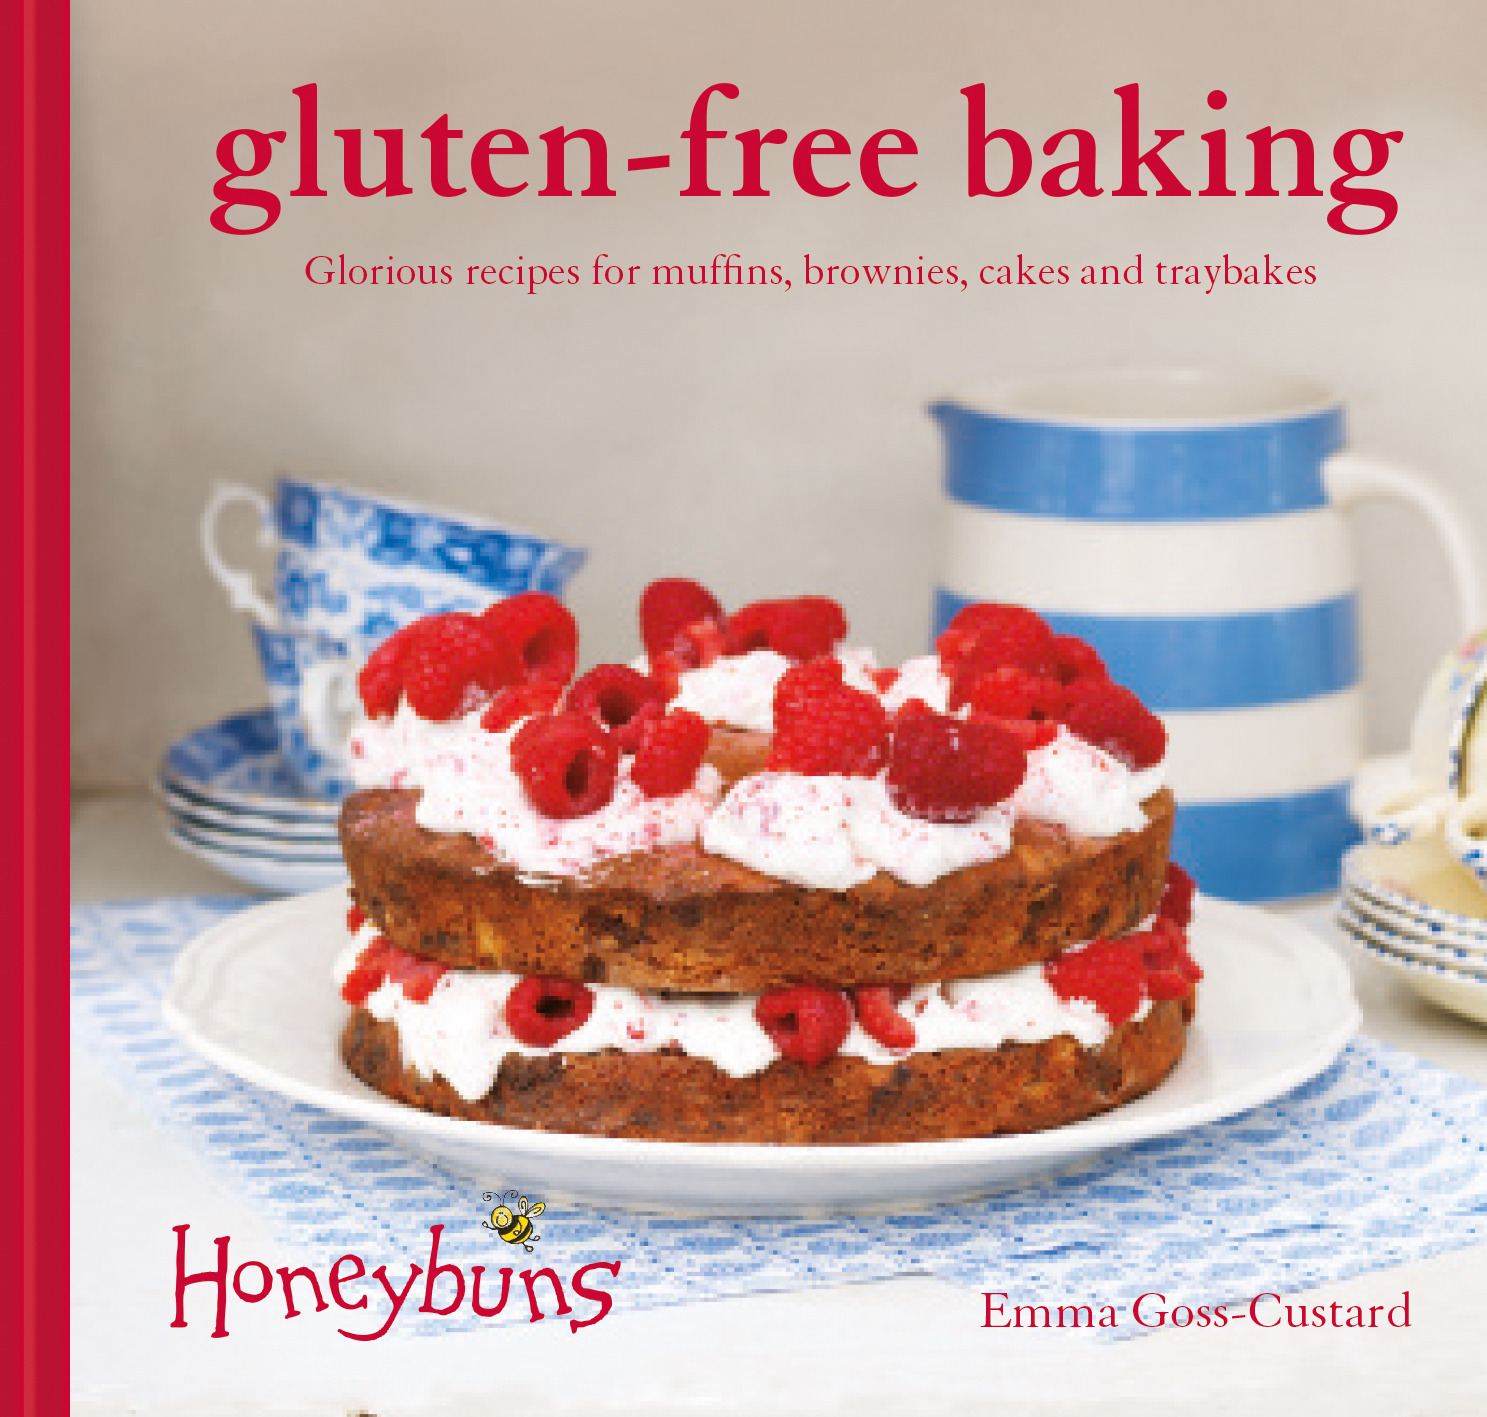 Gluten-free Baking (Honeybuns)